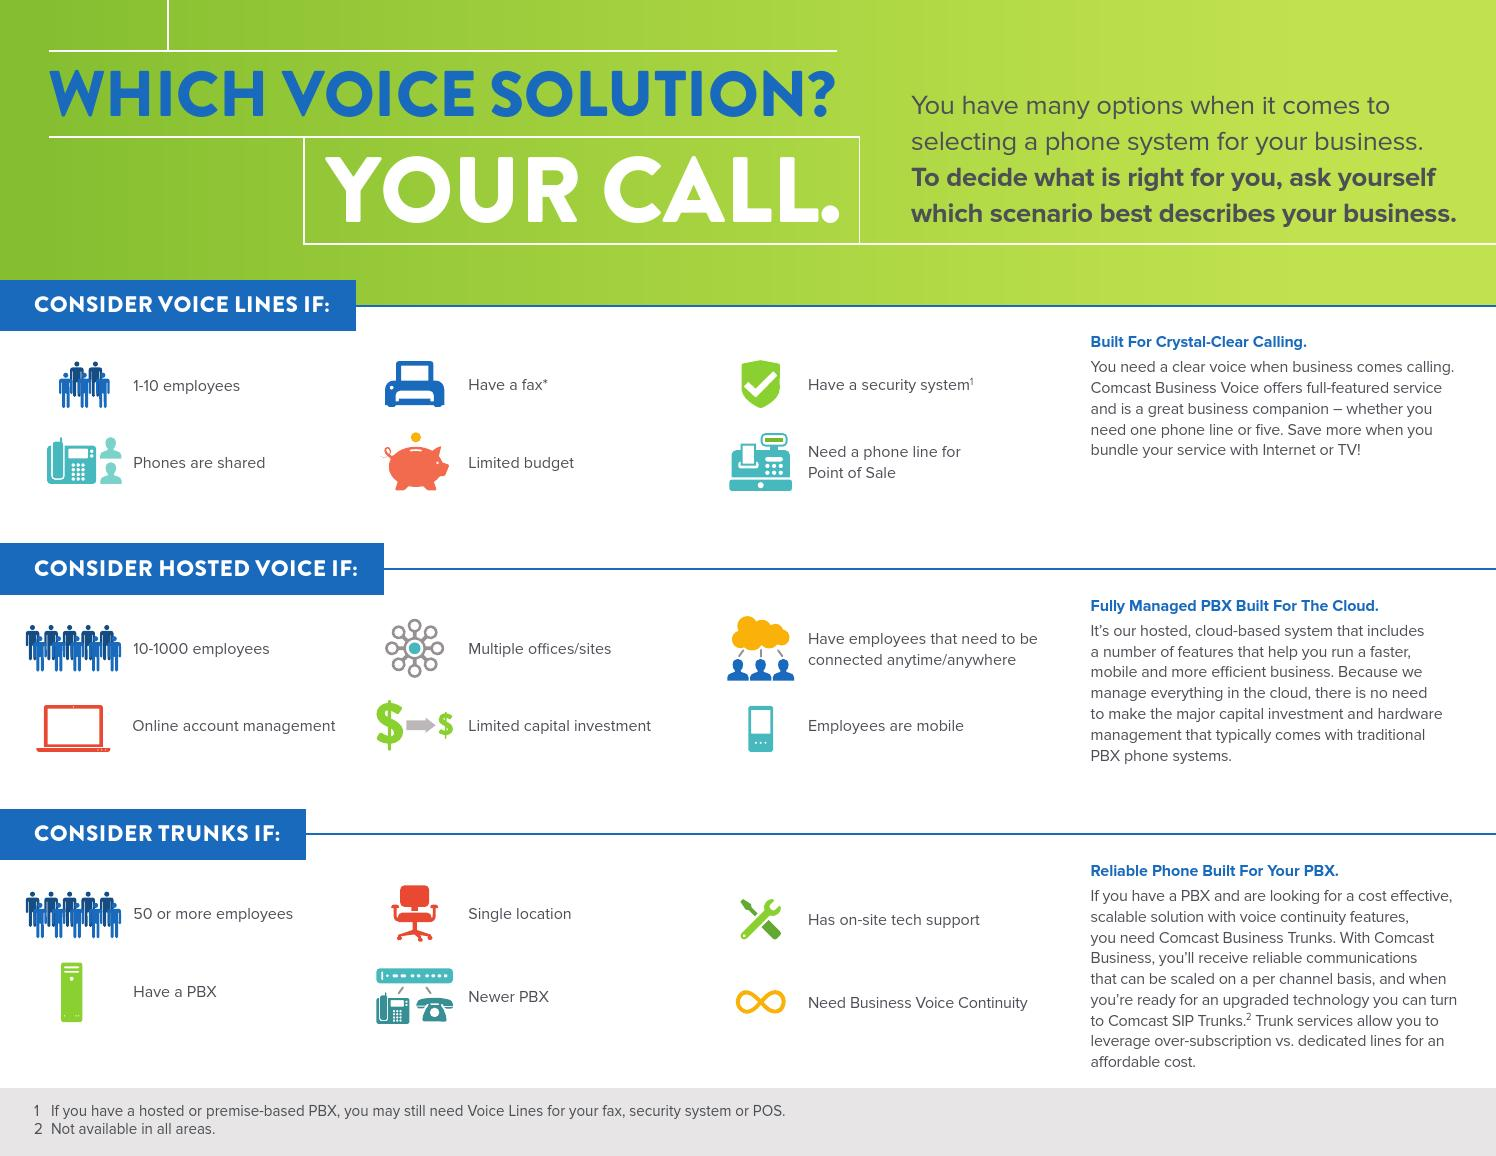 Comcast business voiceinfographic by Brian Wade - issuu